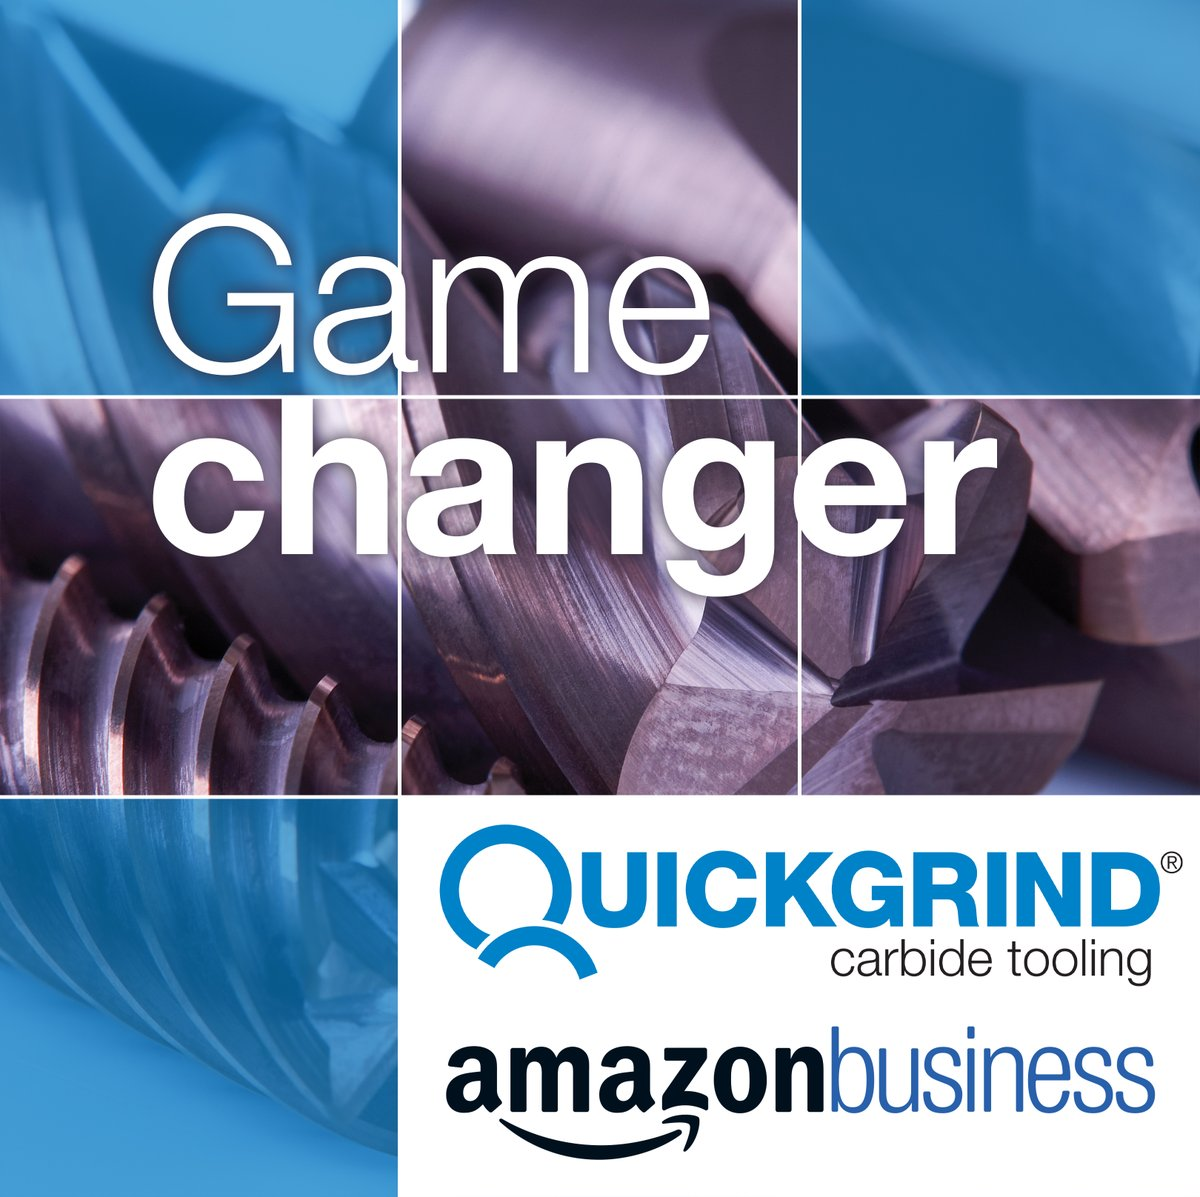 Quickgrind cutting tools will soon be available on Amazon!  From next week, simply visit Amazon and search for 'Quickgrind carbide tooling' to begin your tool buying revolution.  #quickgrind #amazonbusiness #gamechanger #infinitepossibilities